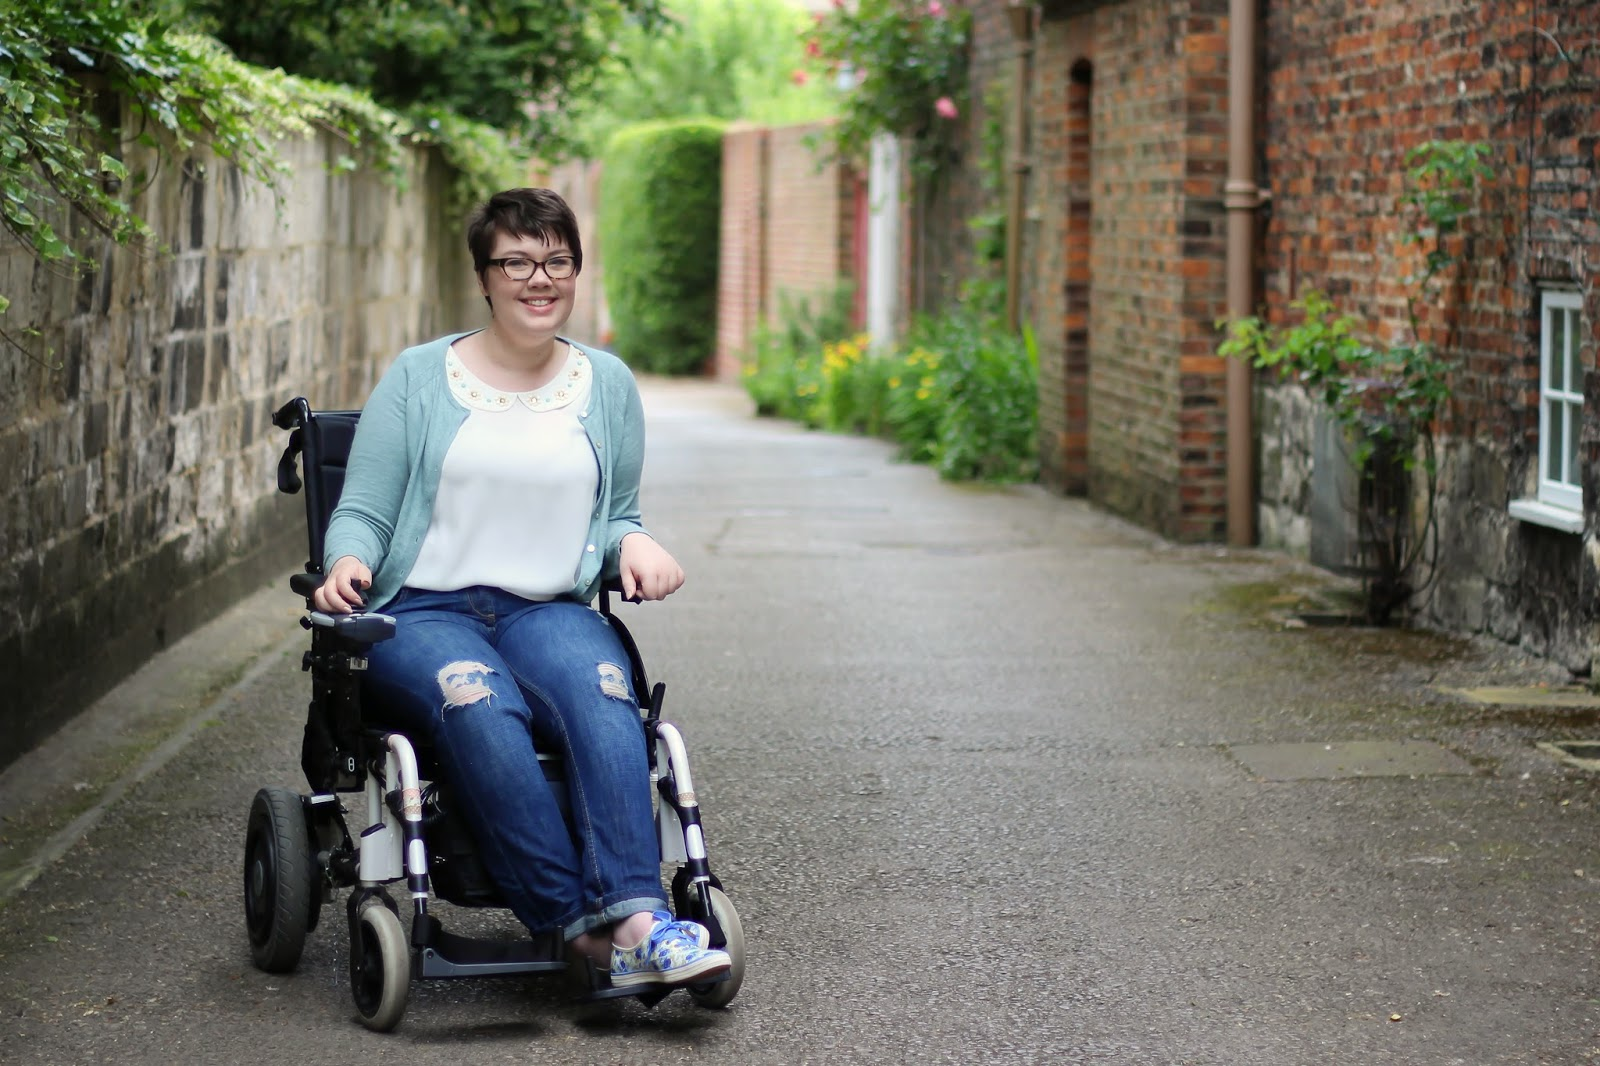 Wheelchair user wearing next jeans and taylor swift keds.